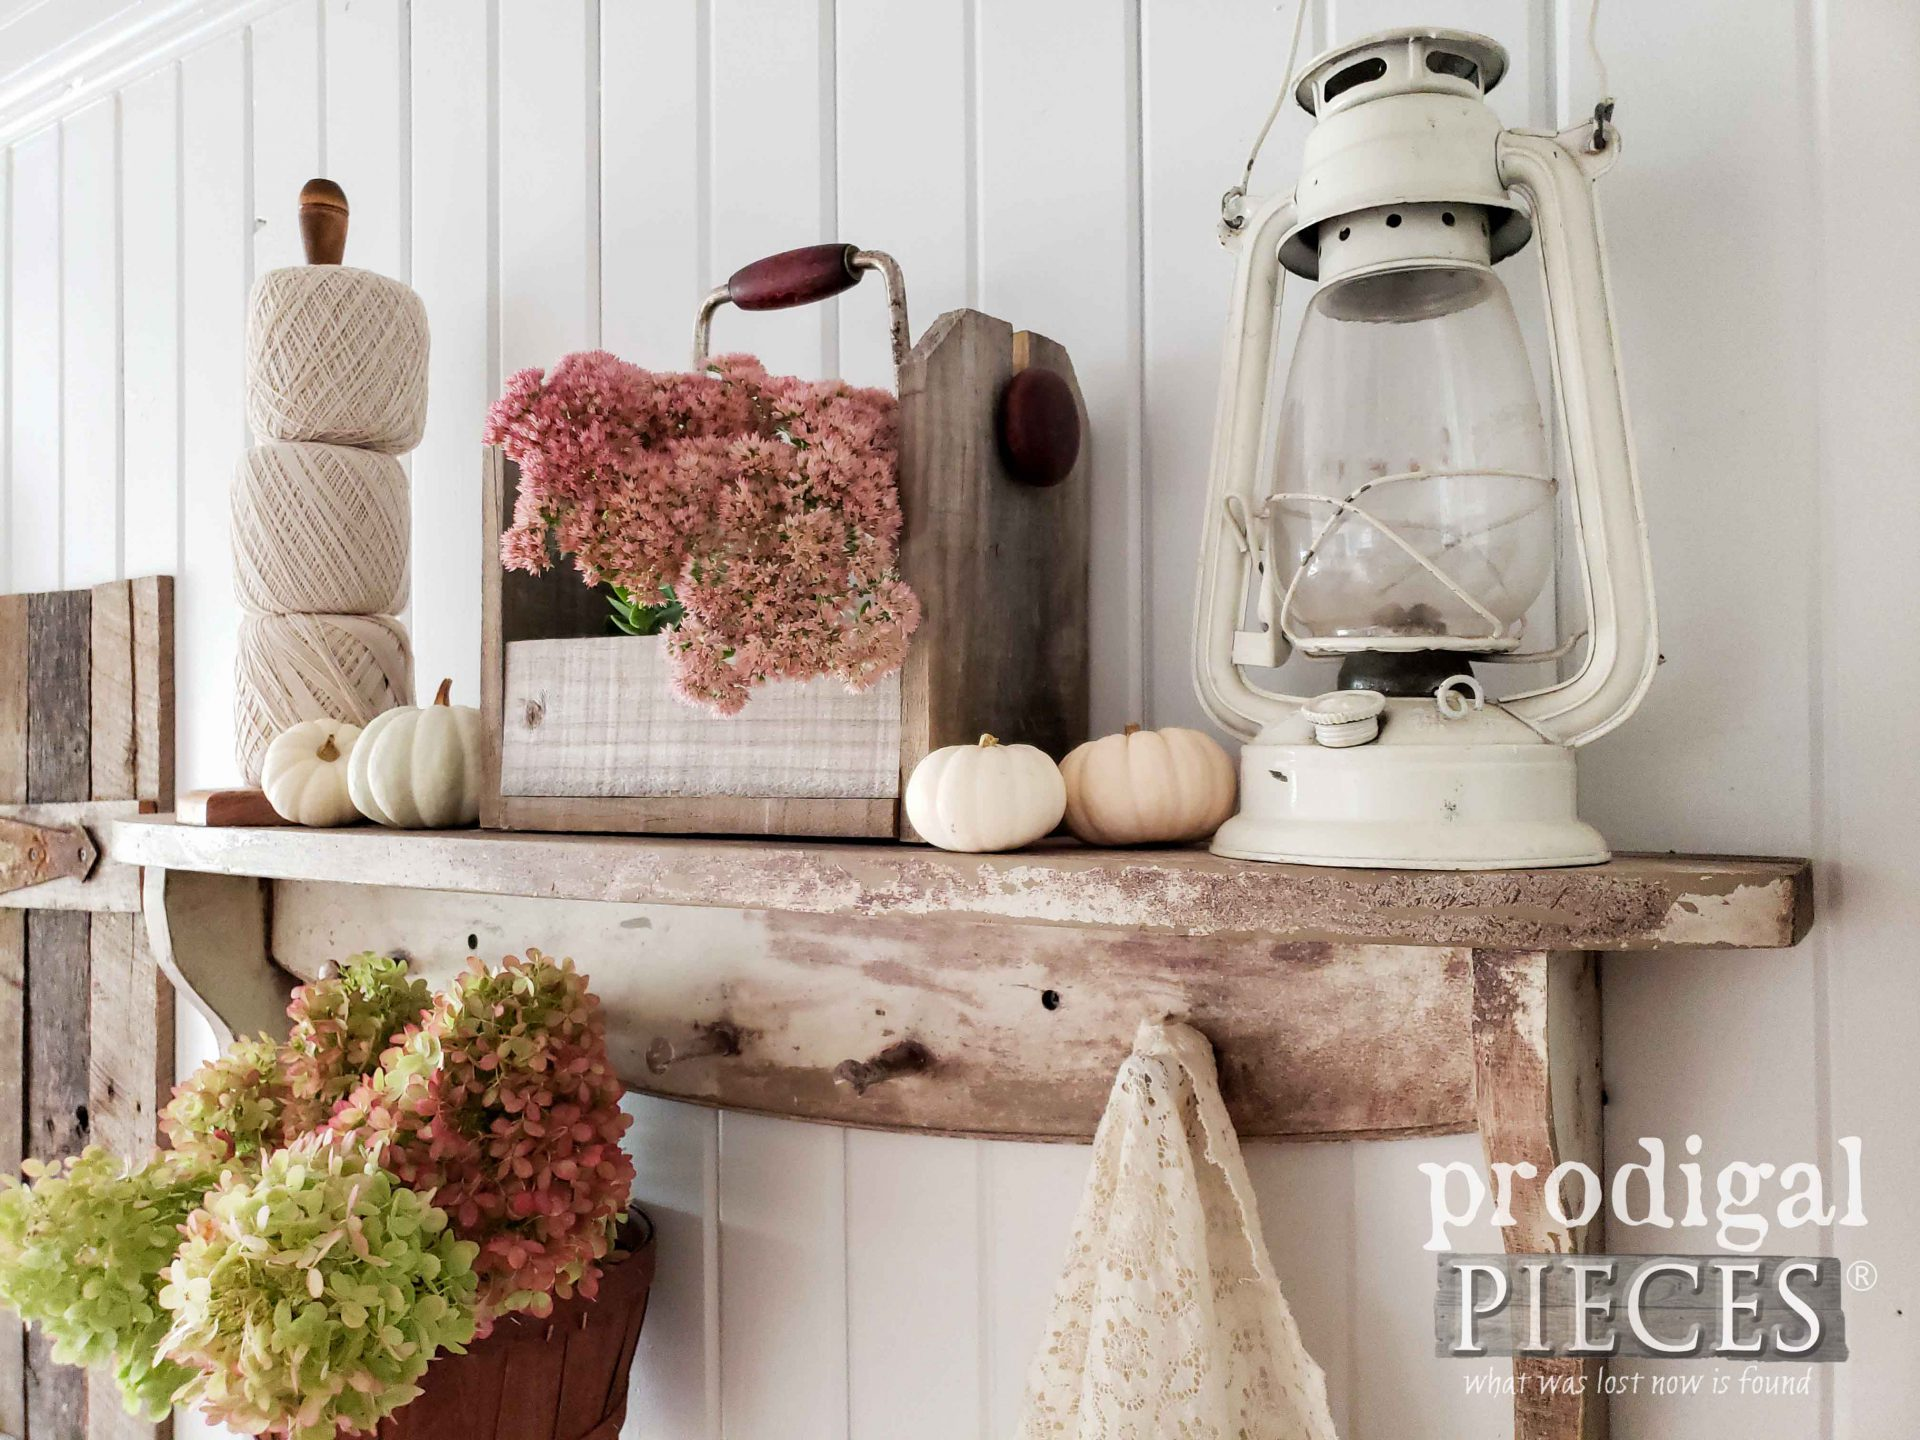 DIY Farmhouse Chippy Shelf with Handmade Decor by Larissa of Prodigal Pieces | prodigalpieces.com #prodigalpieces #home #farmhouse #homedecor #fall #handmade